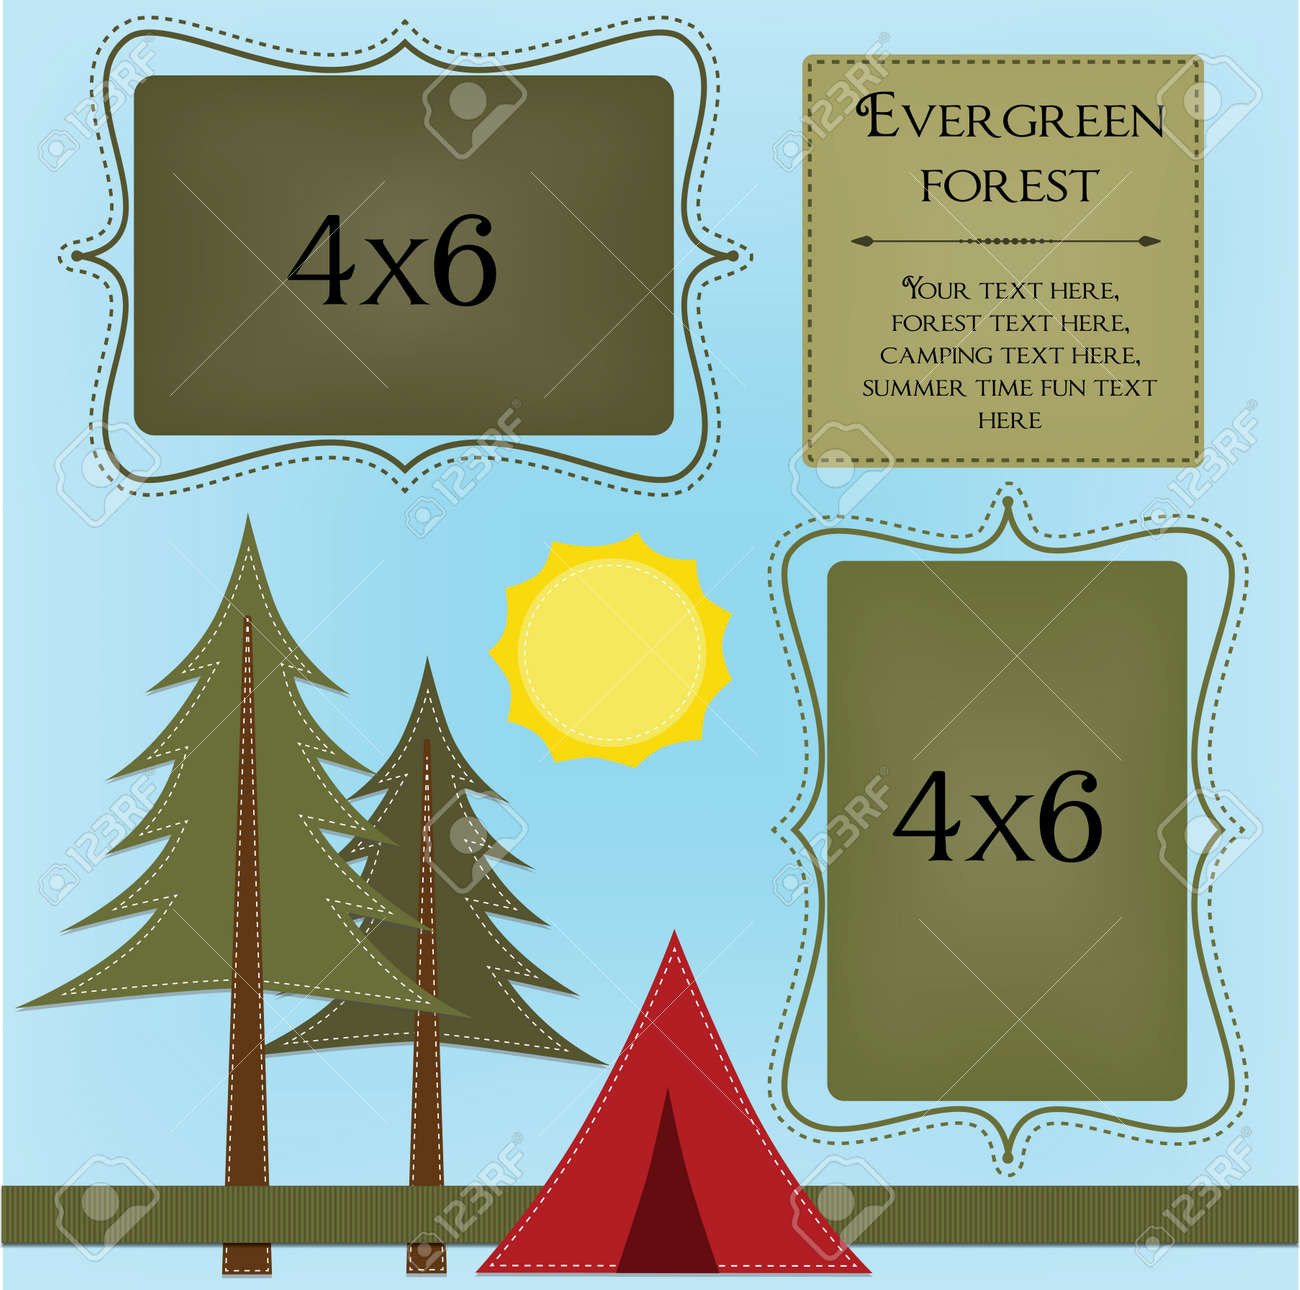 Camping Template With Pine Trees And Tent 4x6 Frames For Photos ...